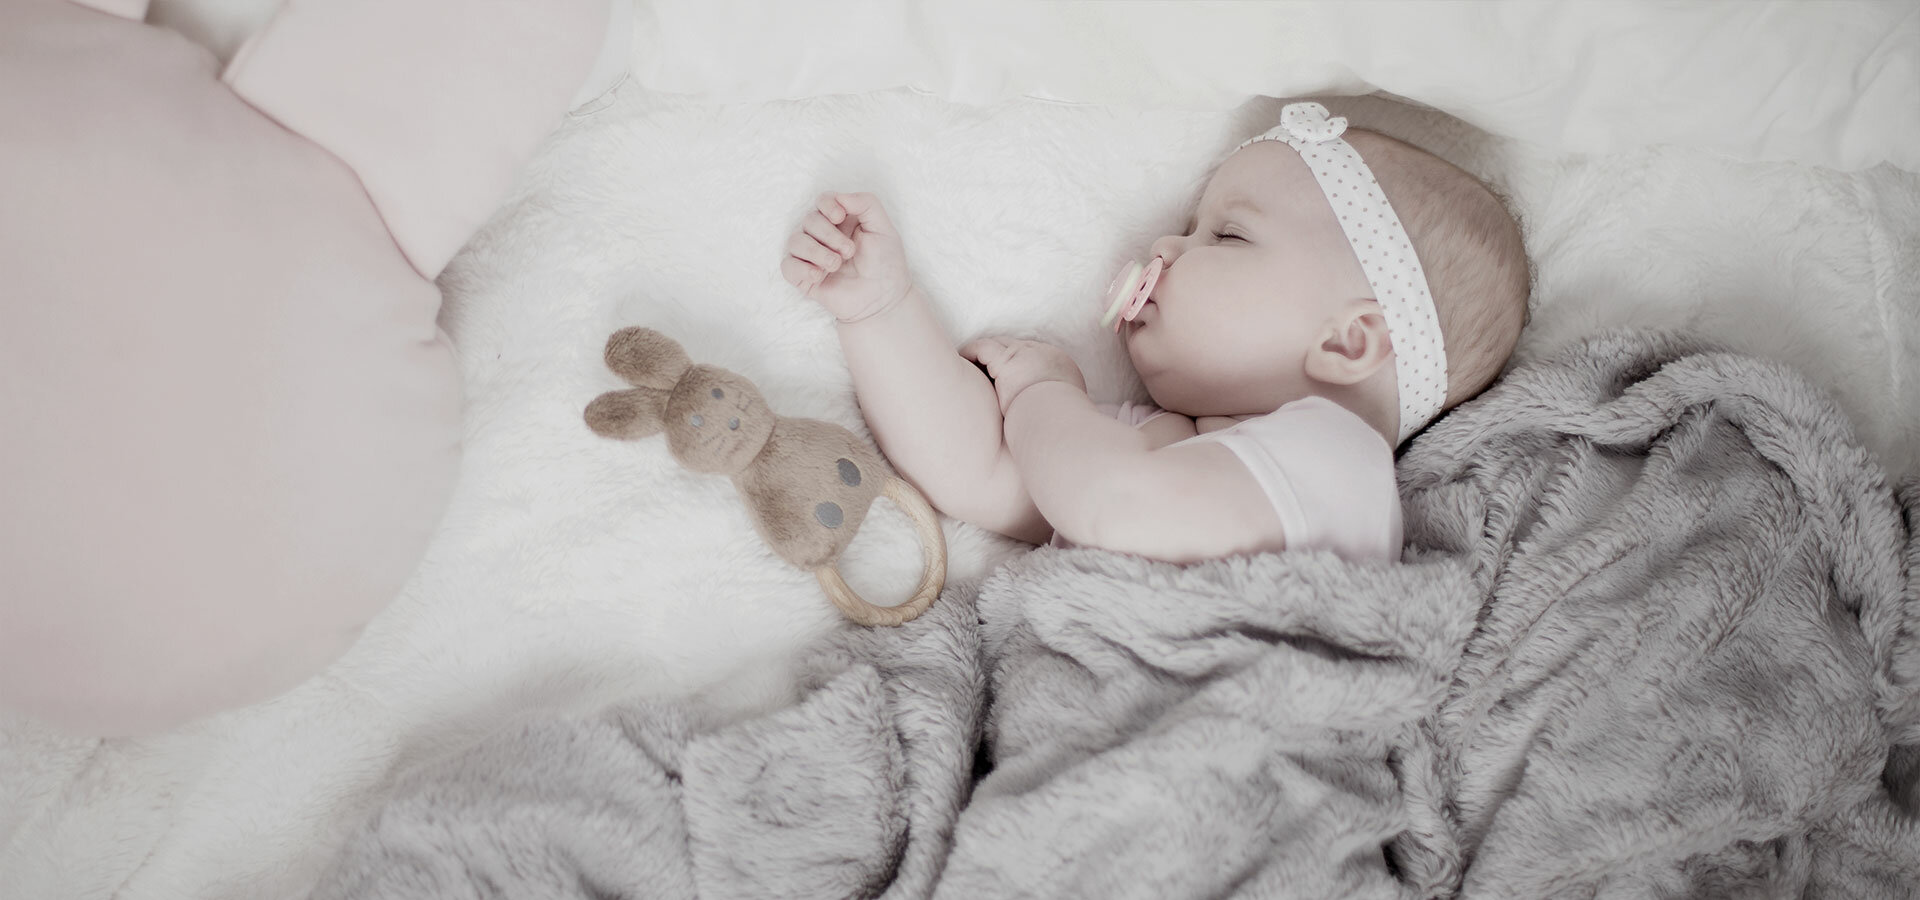 A baby girl is calmy sleeping on a white bed under a soft grey blanket.